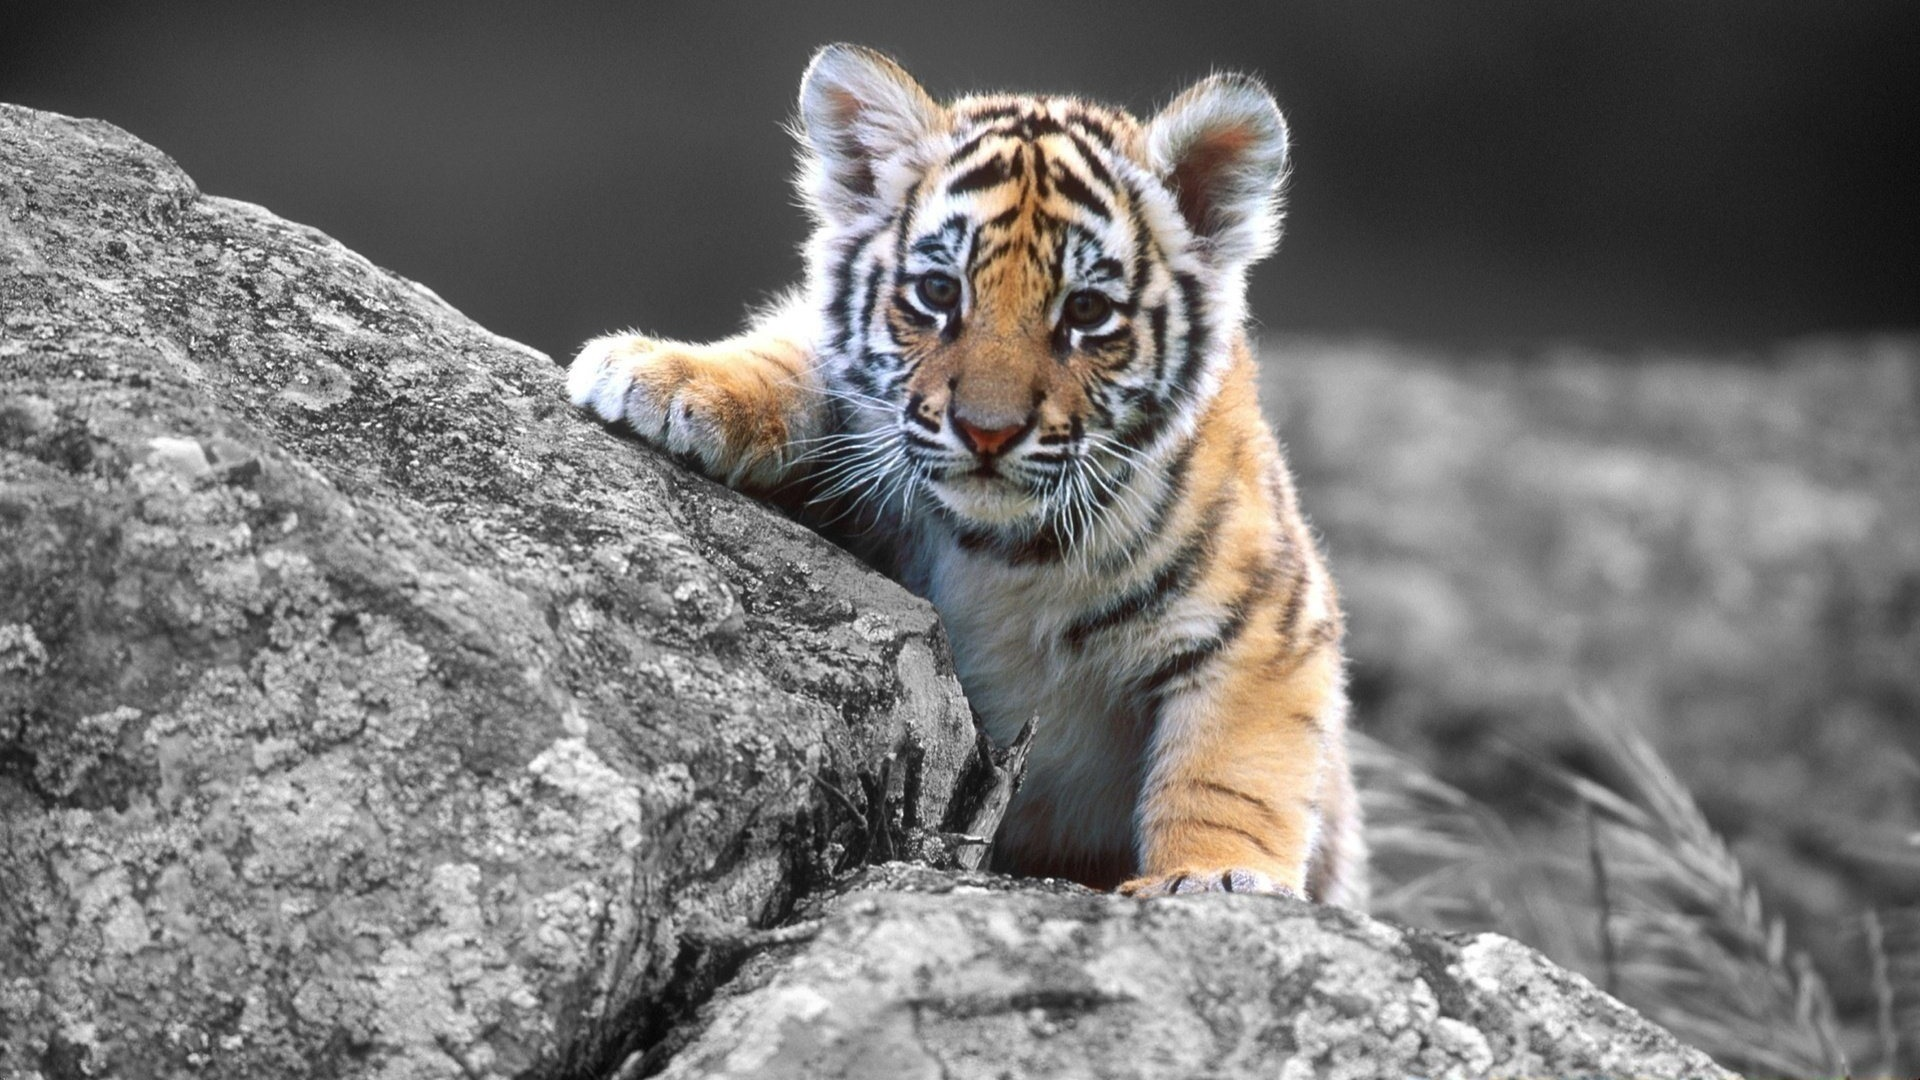 Adorable Baby Tiger Wallpaper